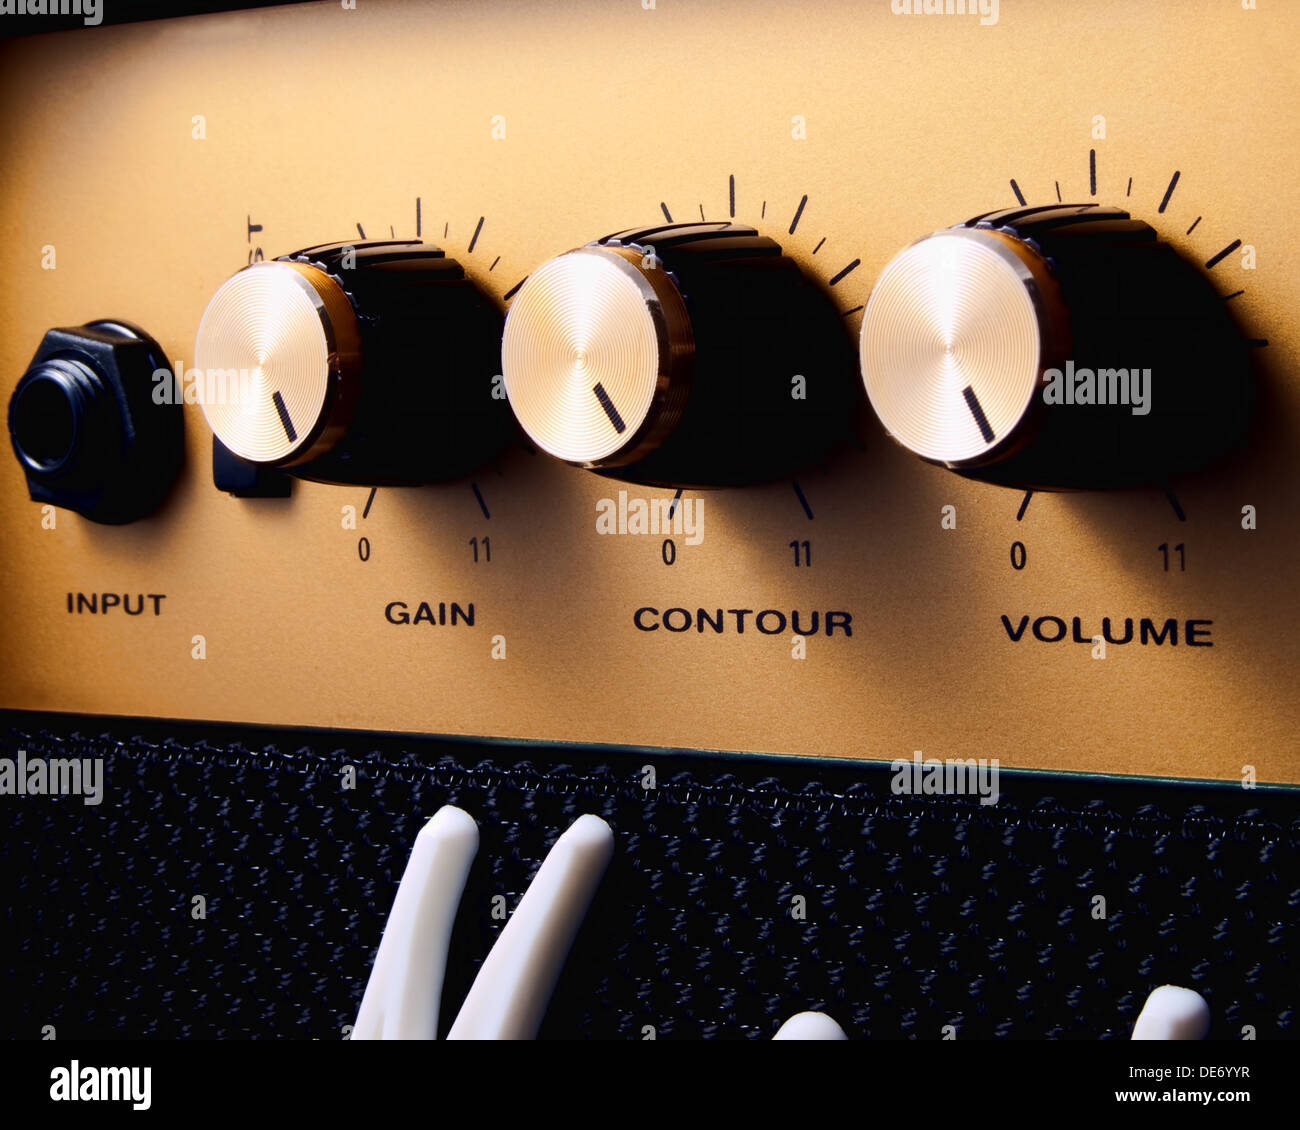 a-guitar-amplifier-turned-up-to-eleven-for-maximum-volume-DE6YYR.jpg